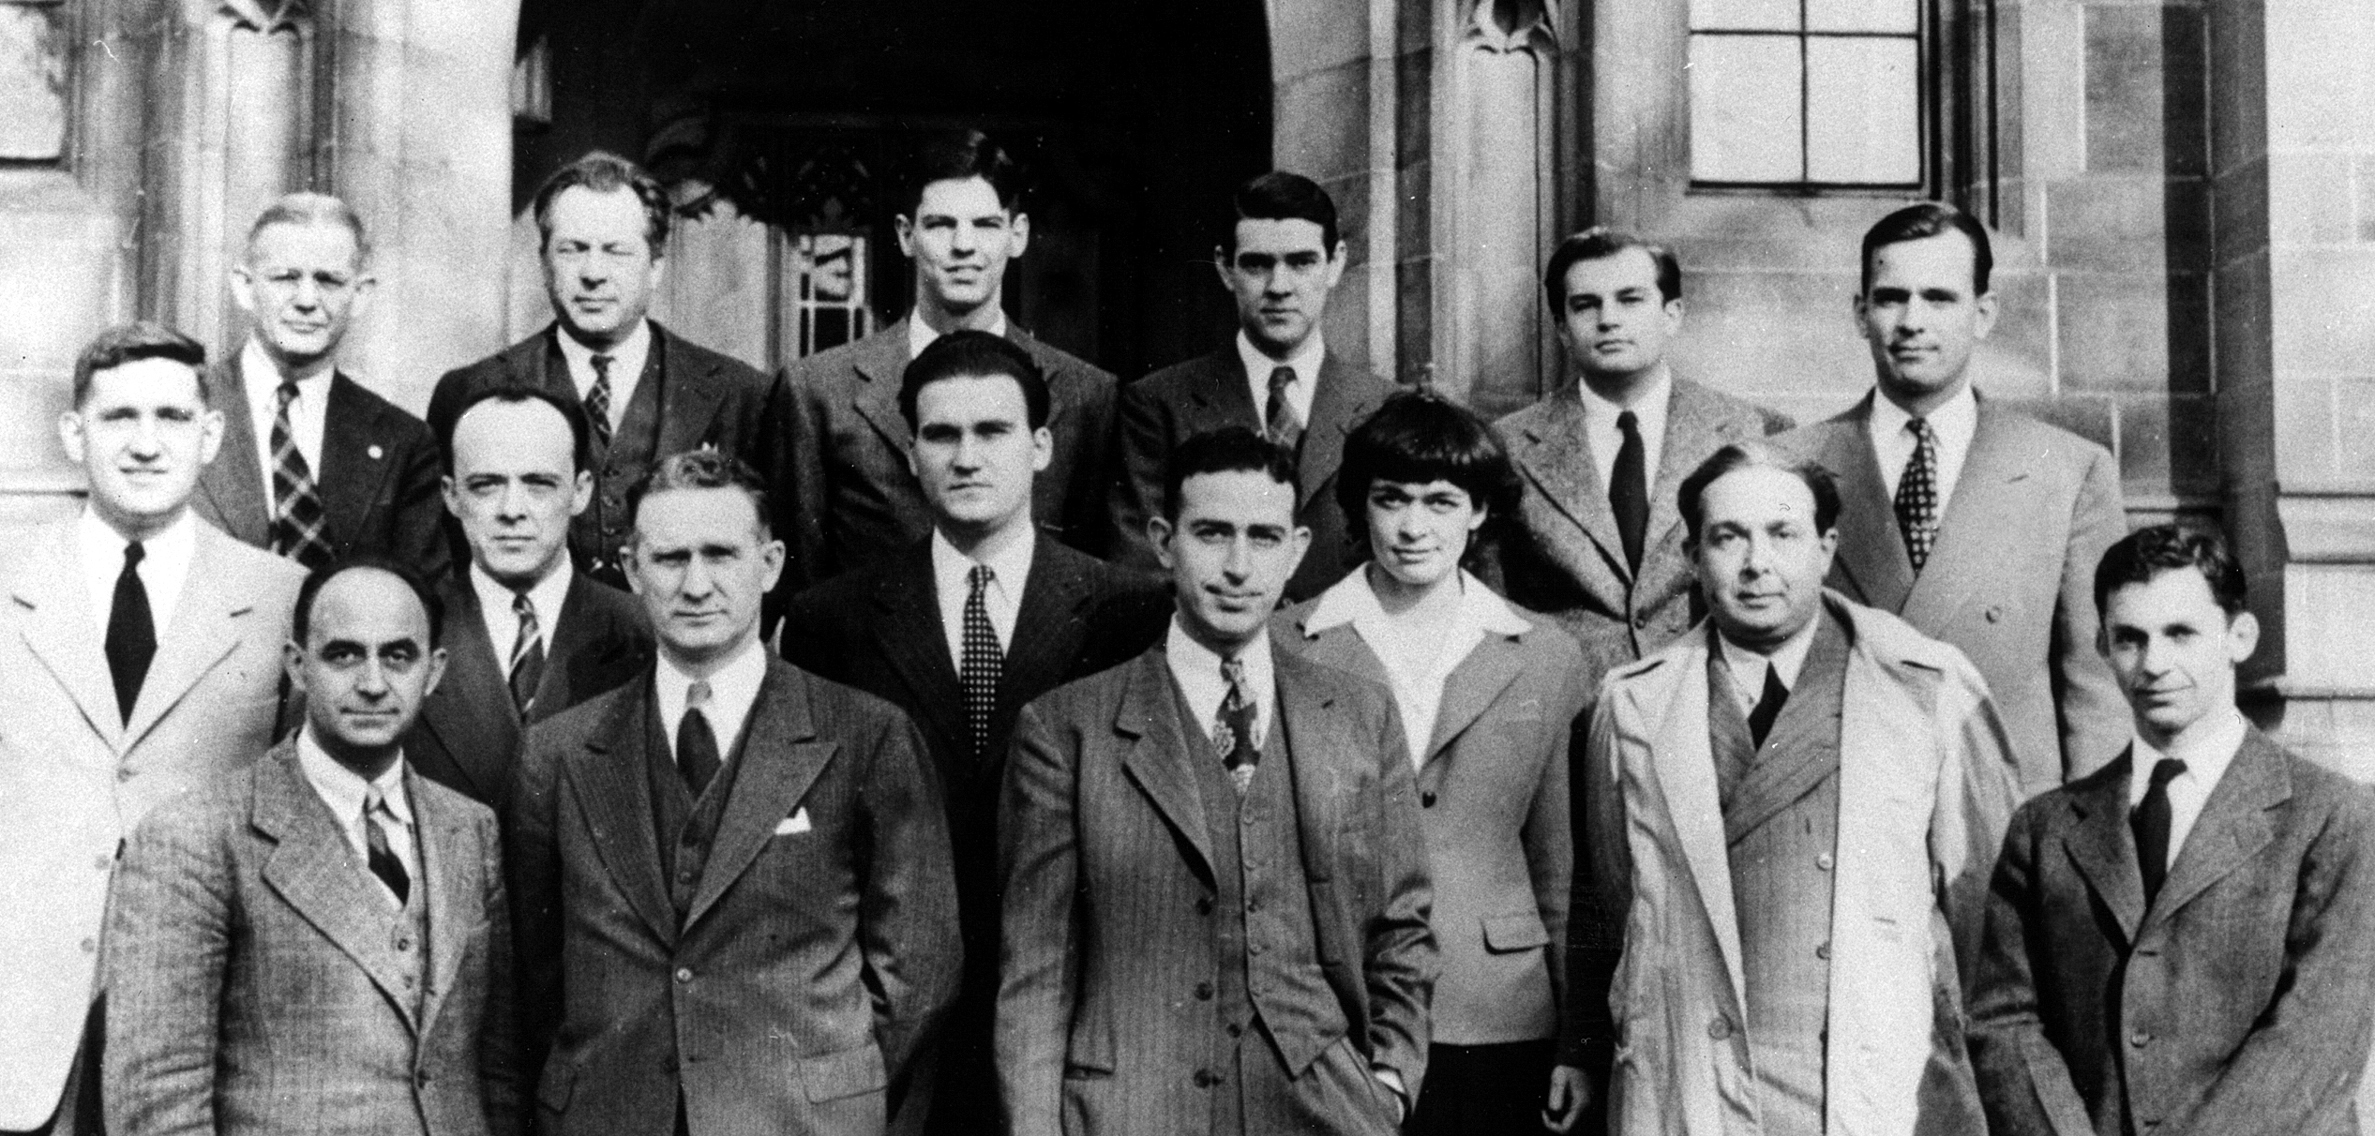 Alumni of the creation of the first nuclear reactor, CP-1, at the University of Chicago's Metallurgical Laboratory. (Emilio Segrè Visual Archive)